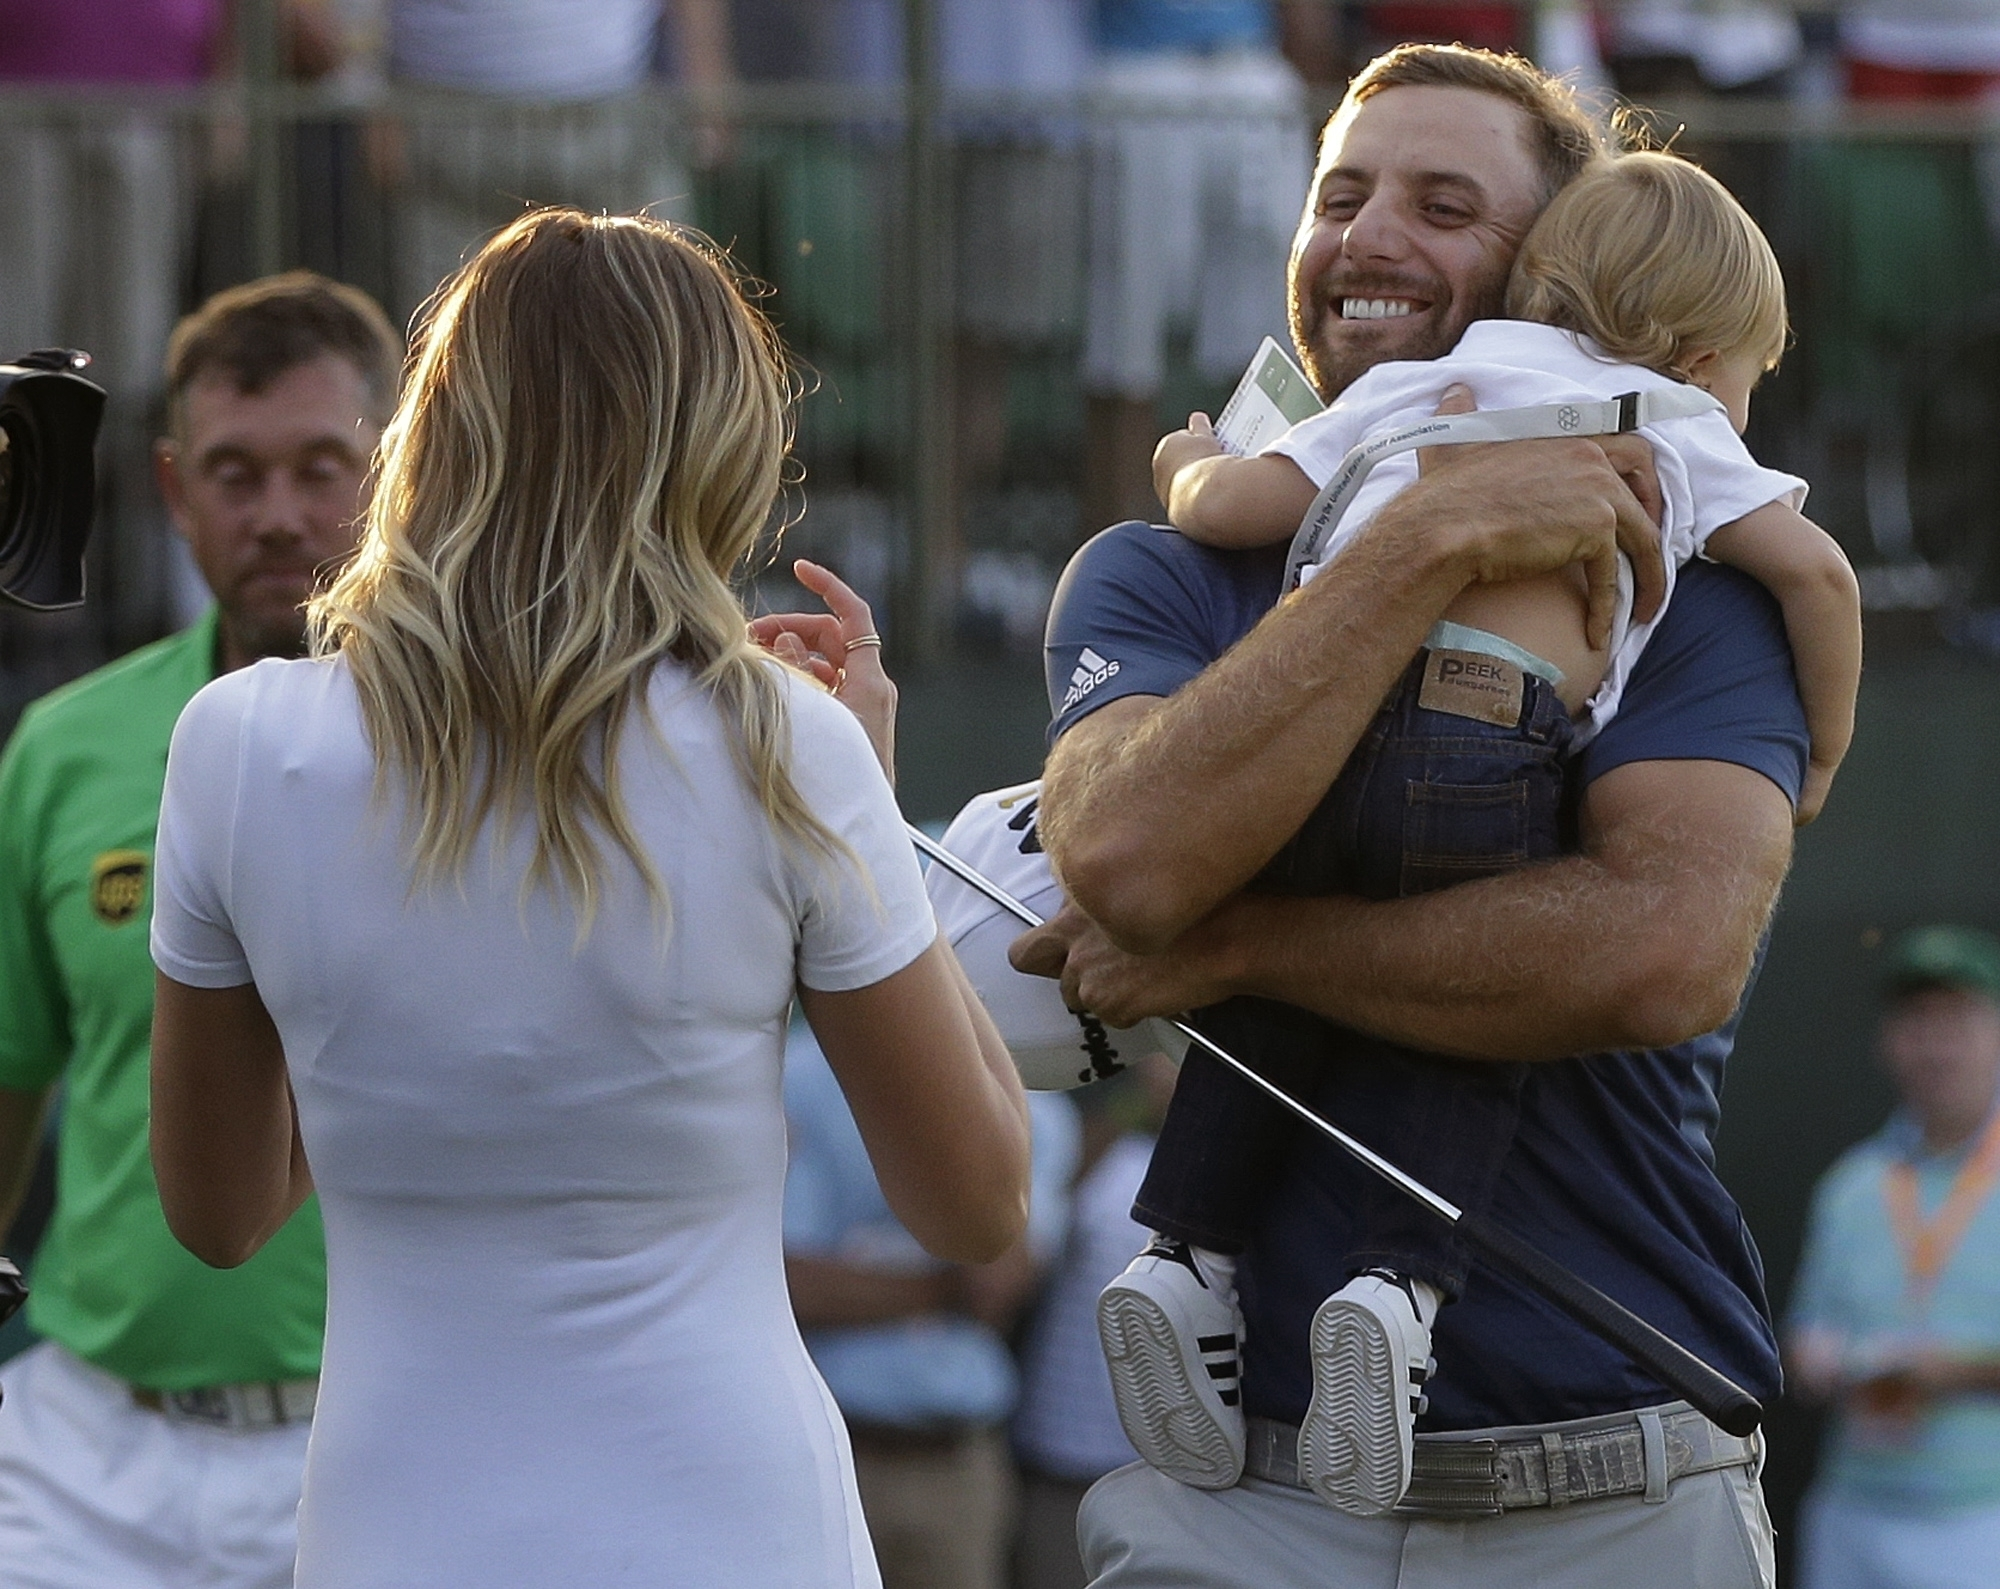 FILE - In this June 19, 2016, file photo, Dustin Johnson, right, greets his fiance, Paulina Gretzky, as he holds their son, Tatum Gretzky, on the 18th hole during the final round of the U.S. Open golf championship,  at Oakmont Country Club, in Oakmont, Pa